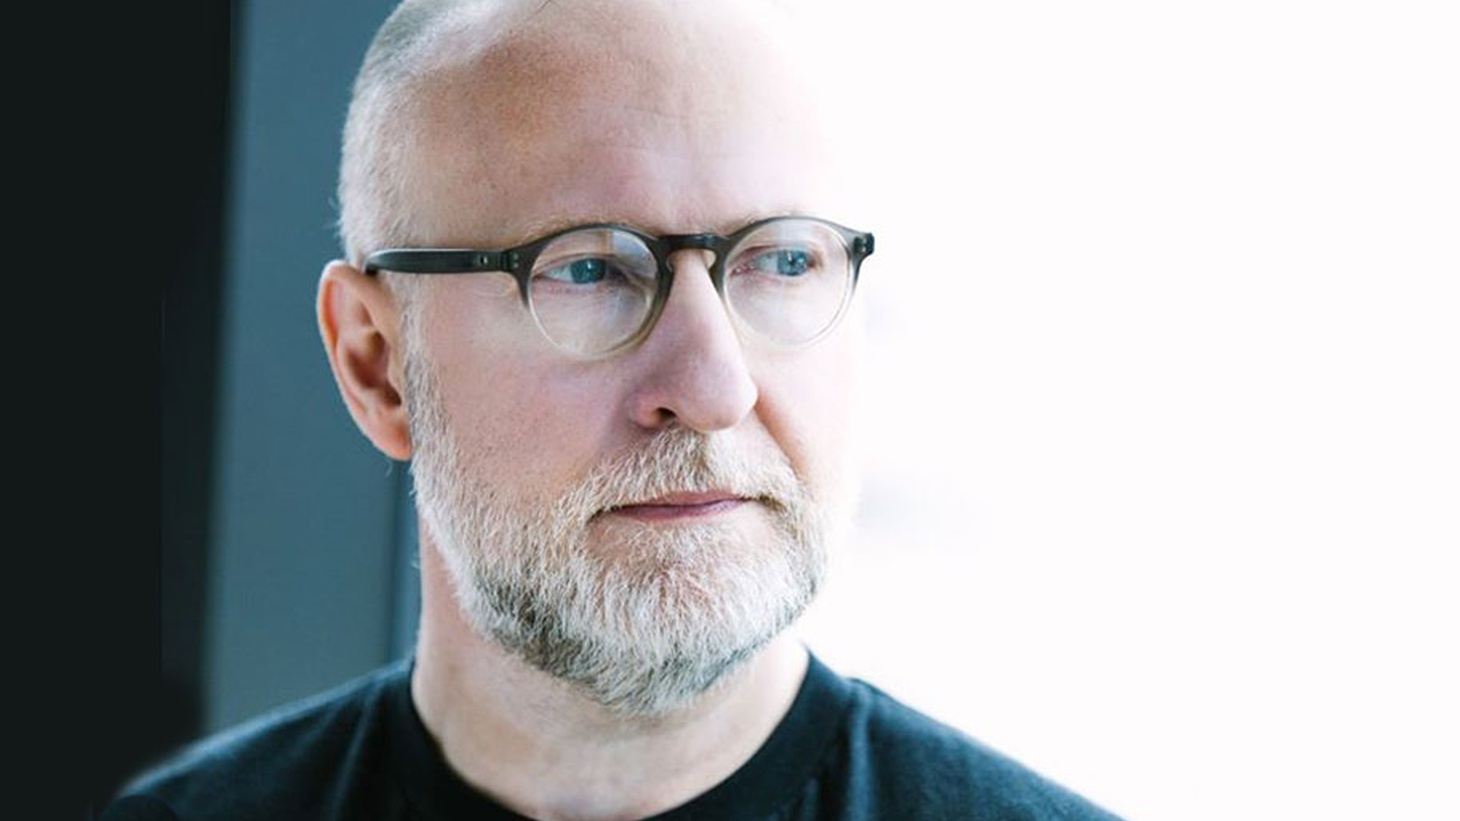 From Husker Du to Sugar, Bob Mould has been in some of the most influential alternative bands around.